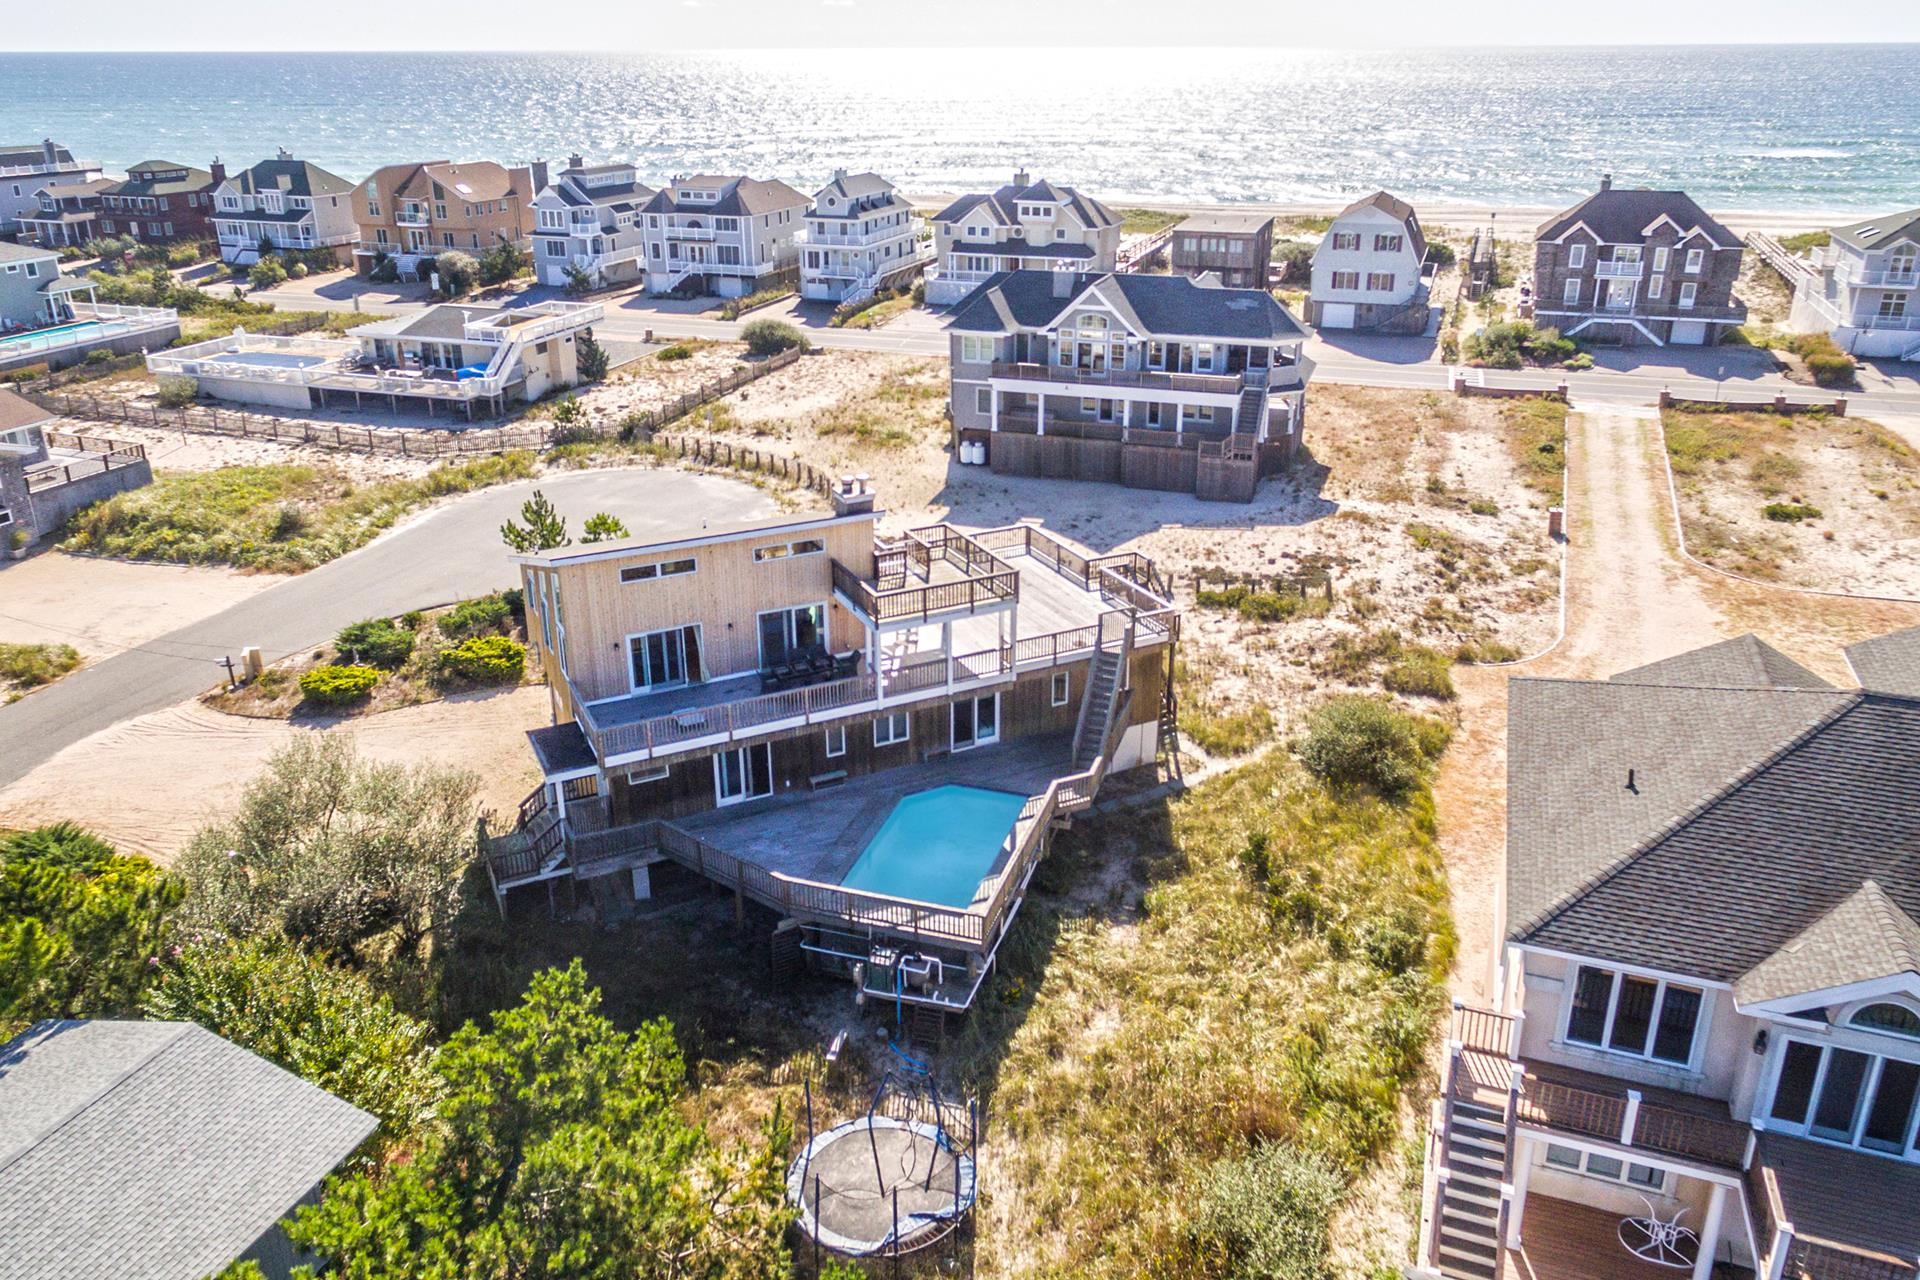 28 Cove Ln - Westhampton Dune, New York